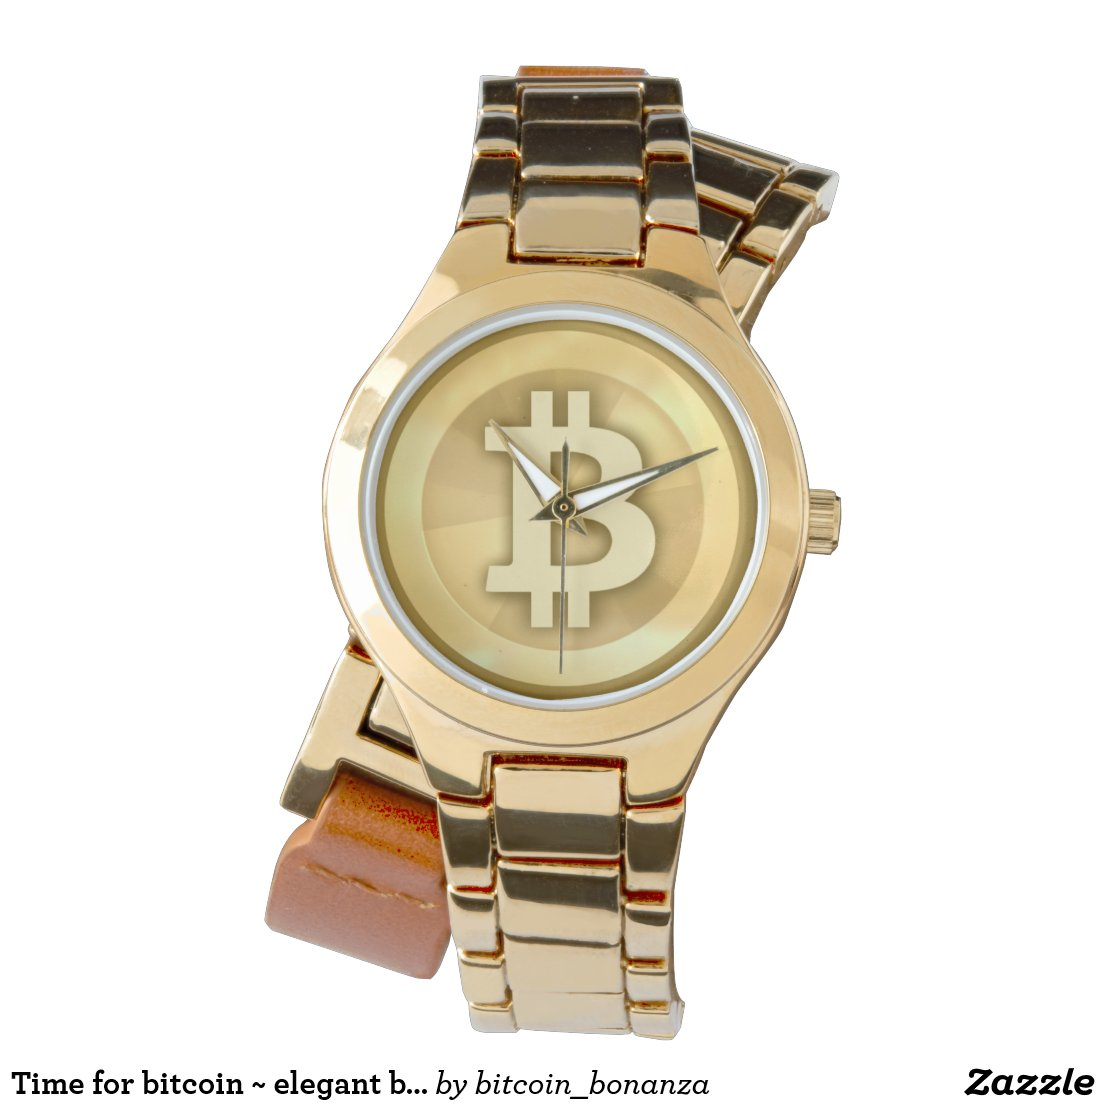 Time for bitcoin ~ elegant bitcoin logo wrist watch